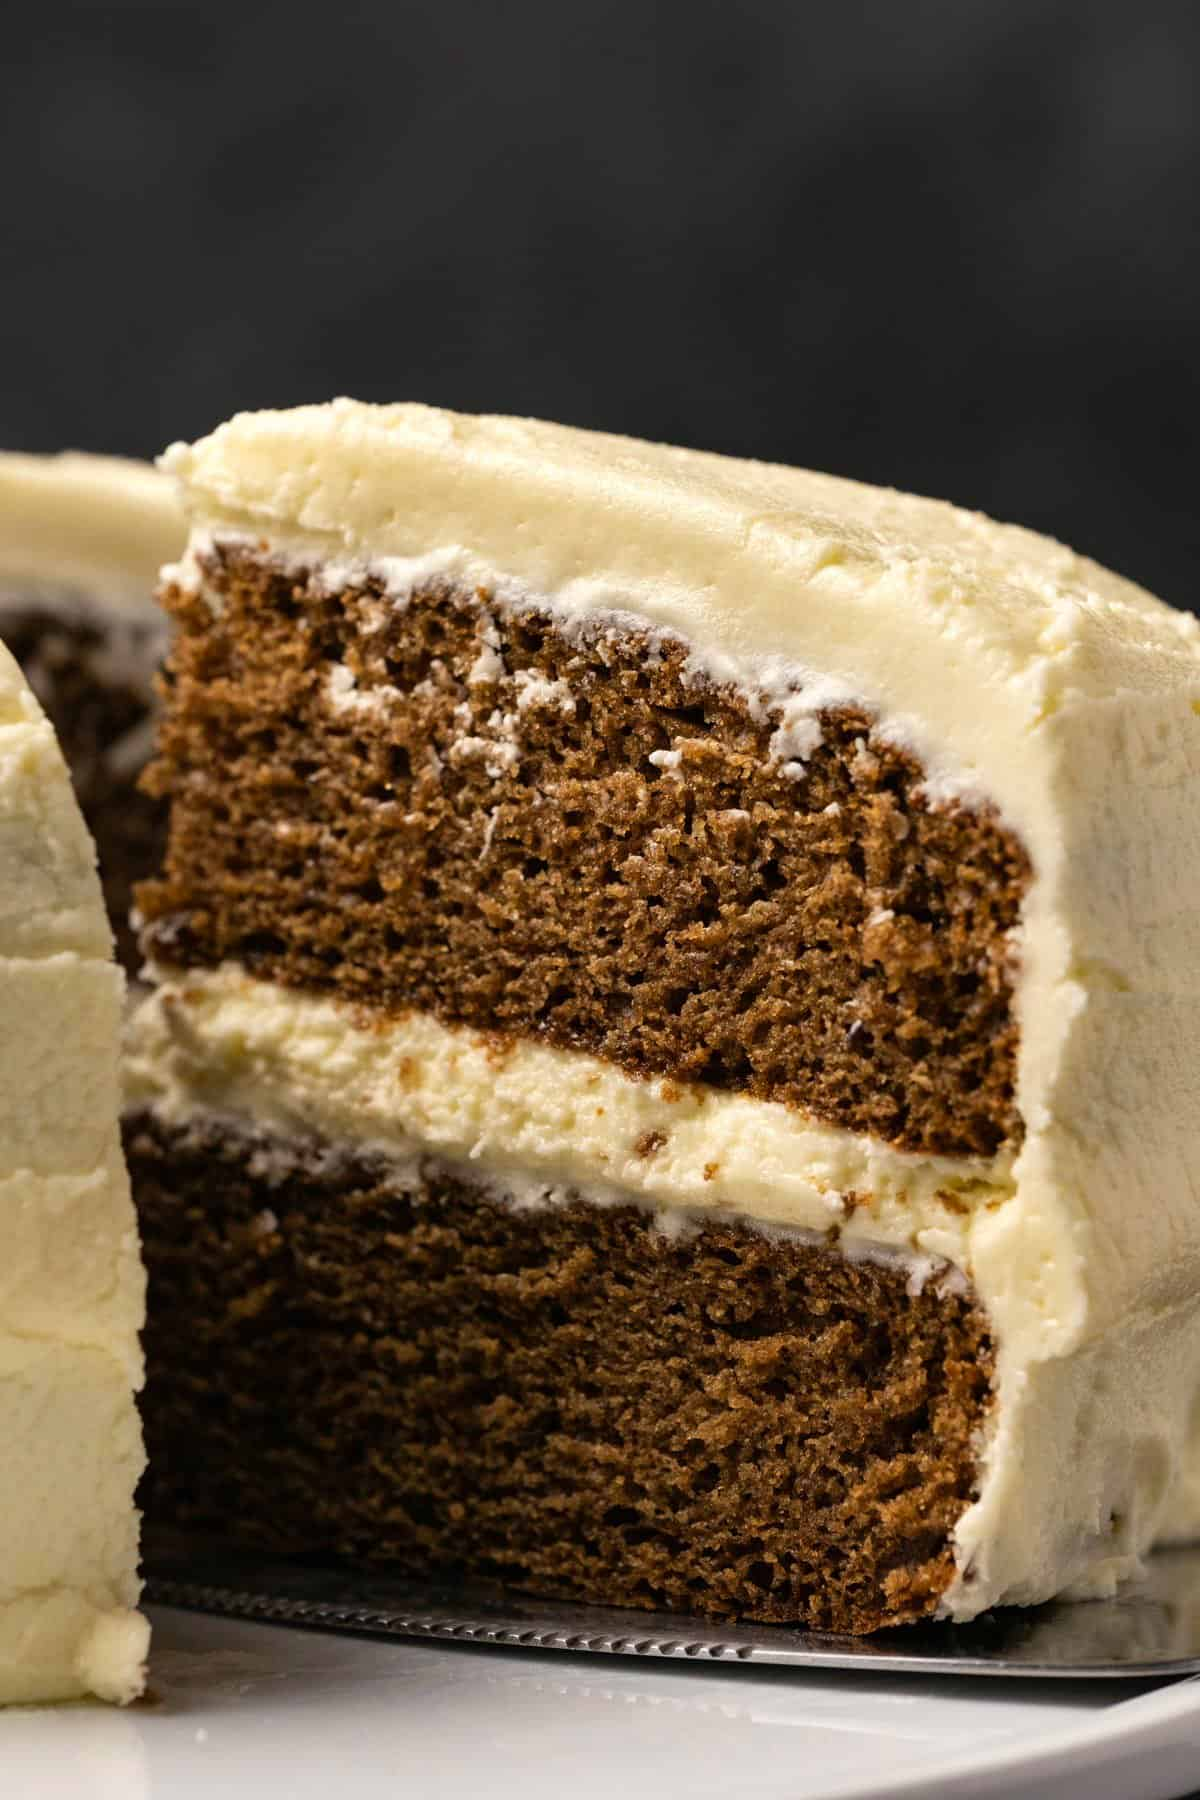 Vegan gingerbread cake on a white cake stand with one slice cut.